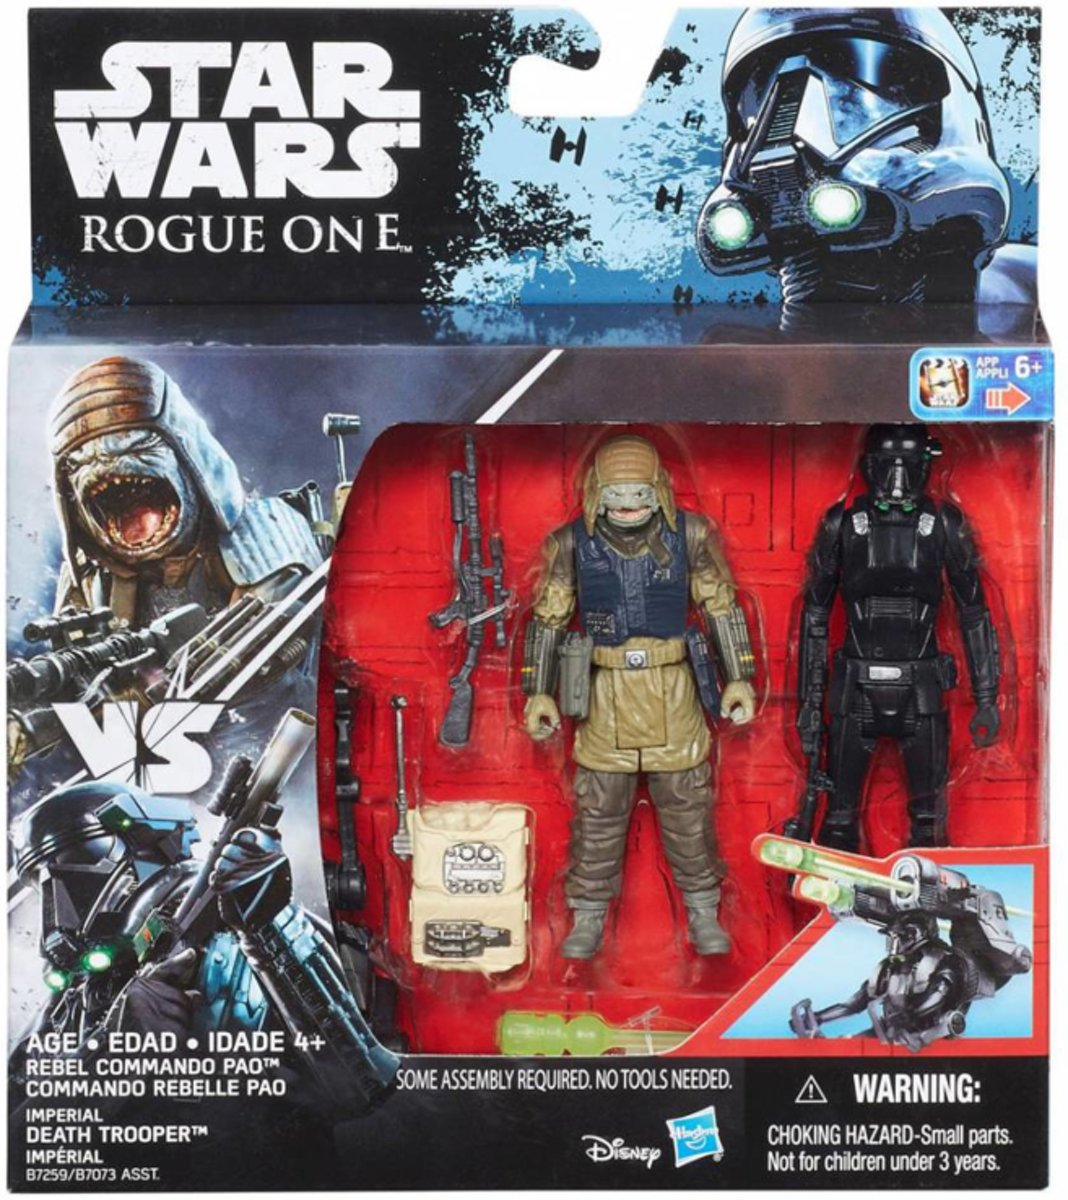 Star Wars Rogue One - Rebel Commando Pao and Imperial Death Trooper